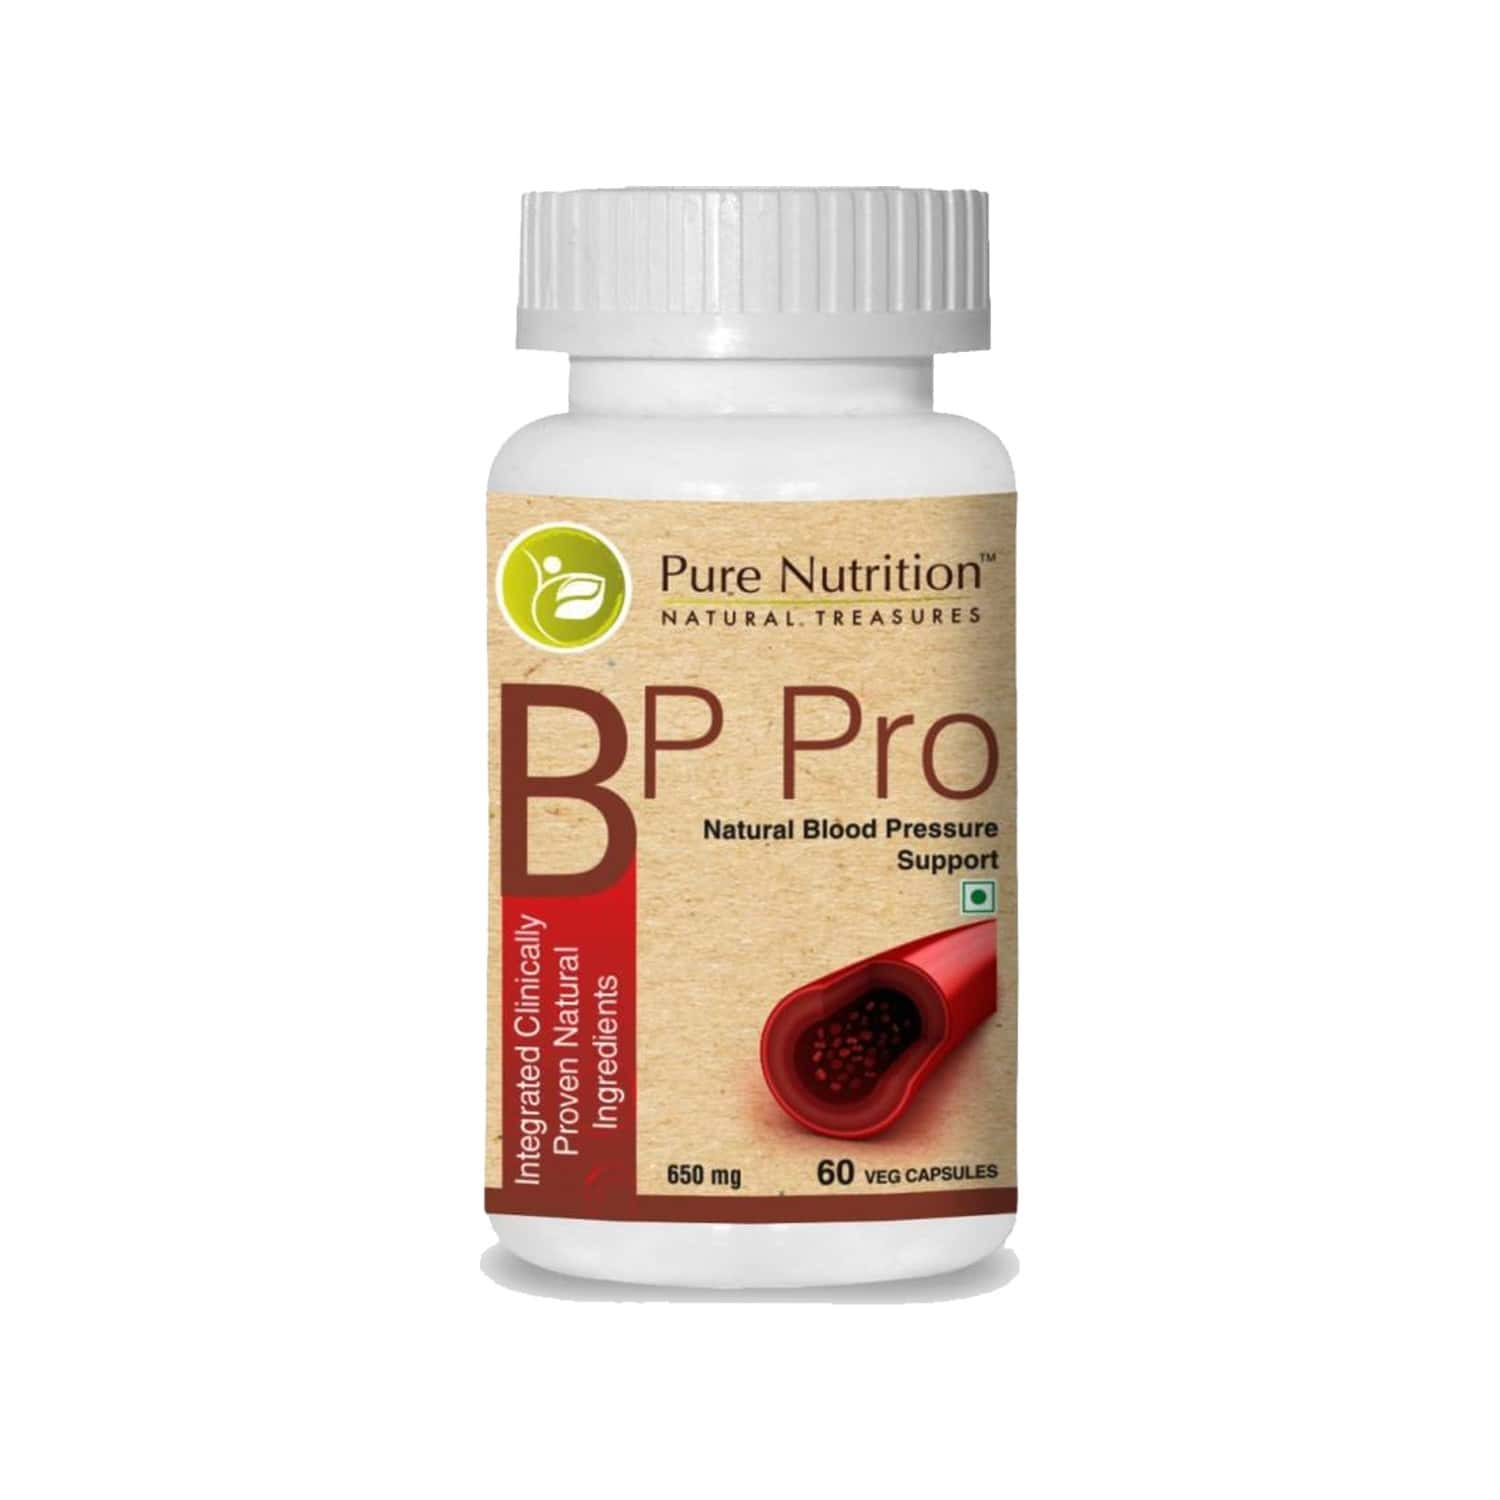 Pure Nutrition Bp Pro Management (integrated Clinically Proven Natural Ingredients) - 60 Caps